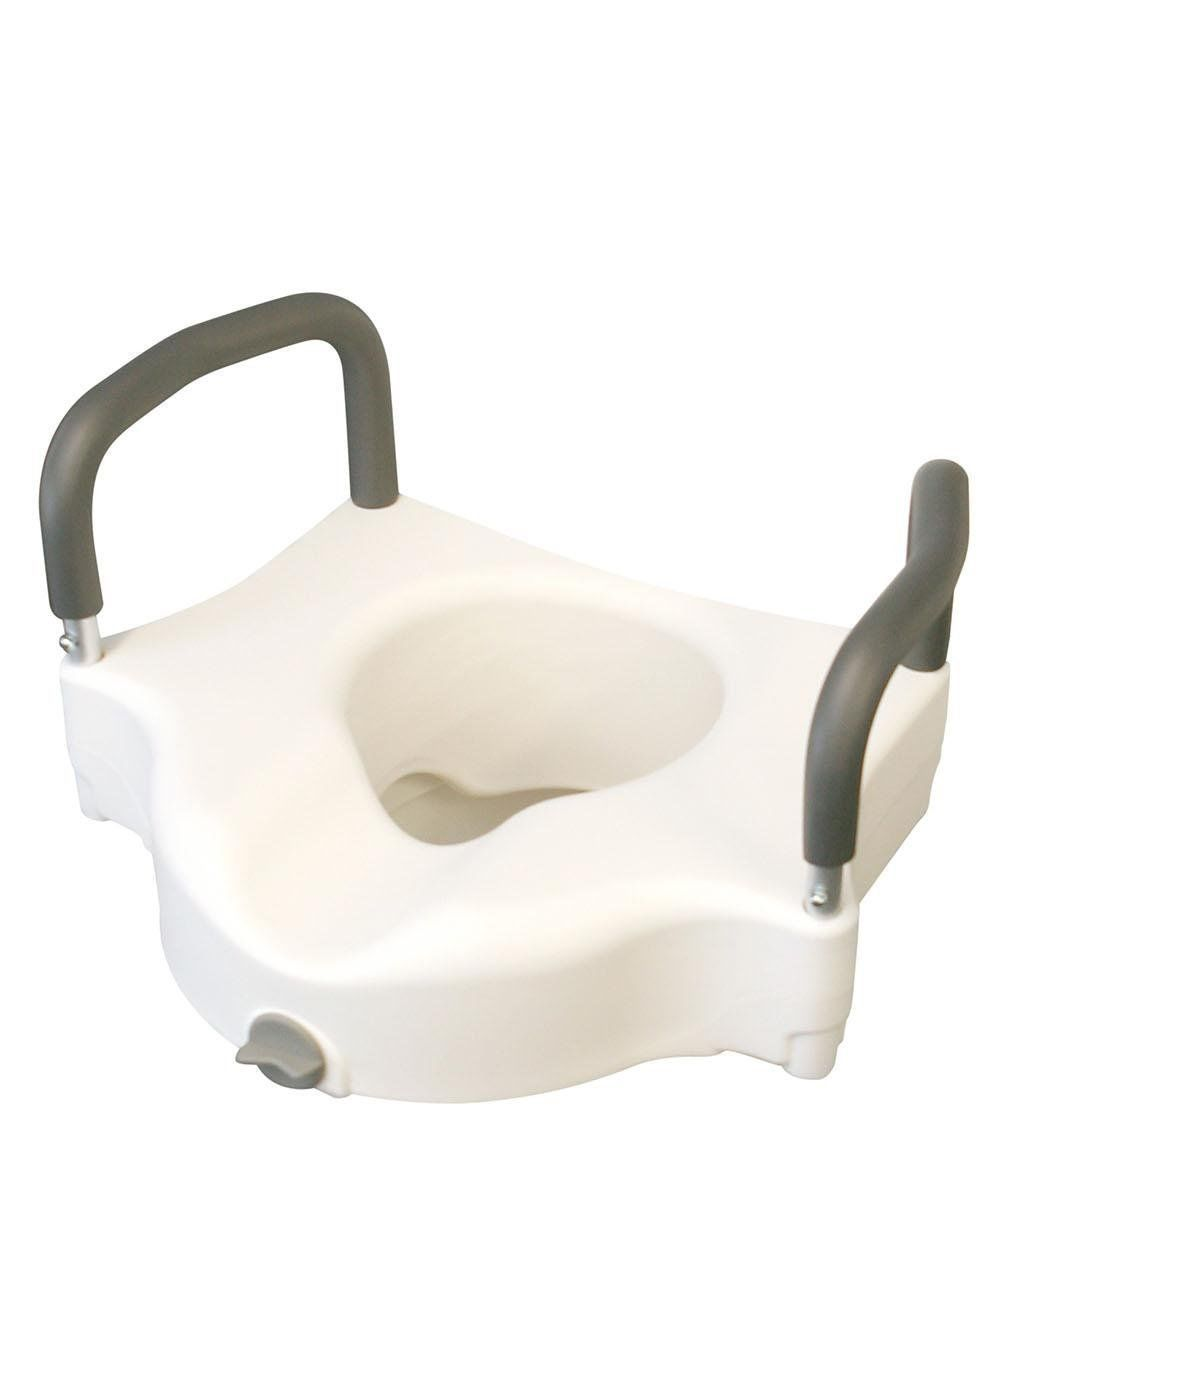 Standard toilet seat dimensions  NEW WALGREENS Raised Elevated Toilet Seat Lift Riser Safety Rails w